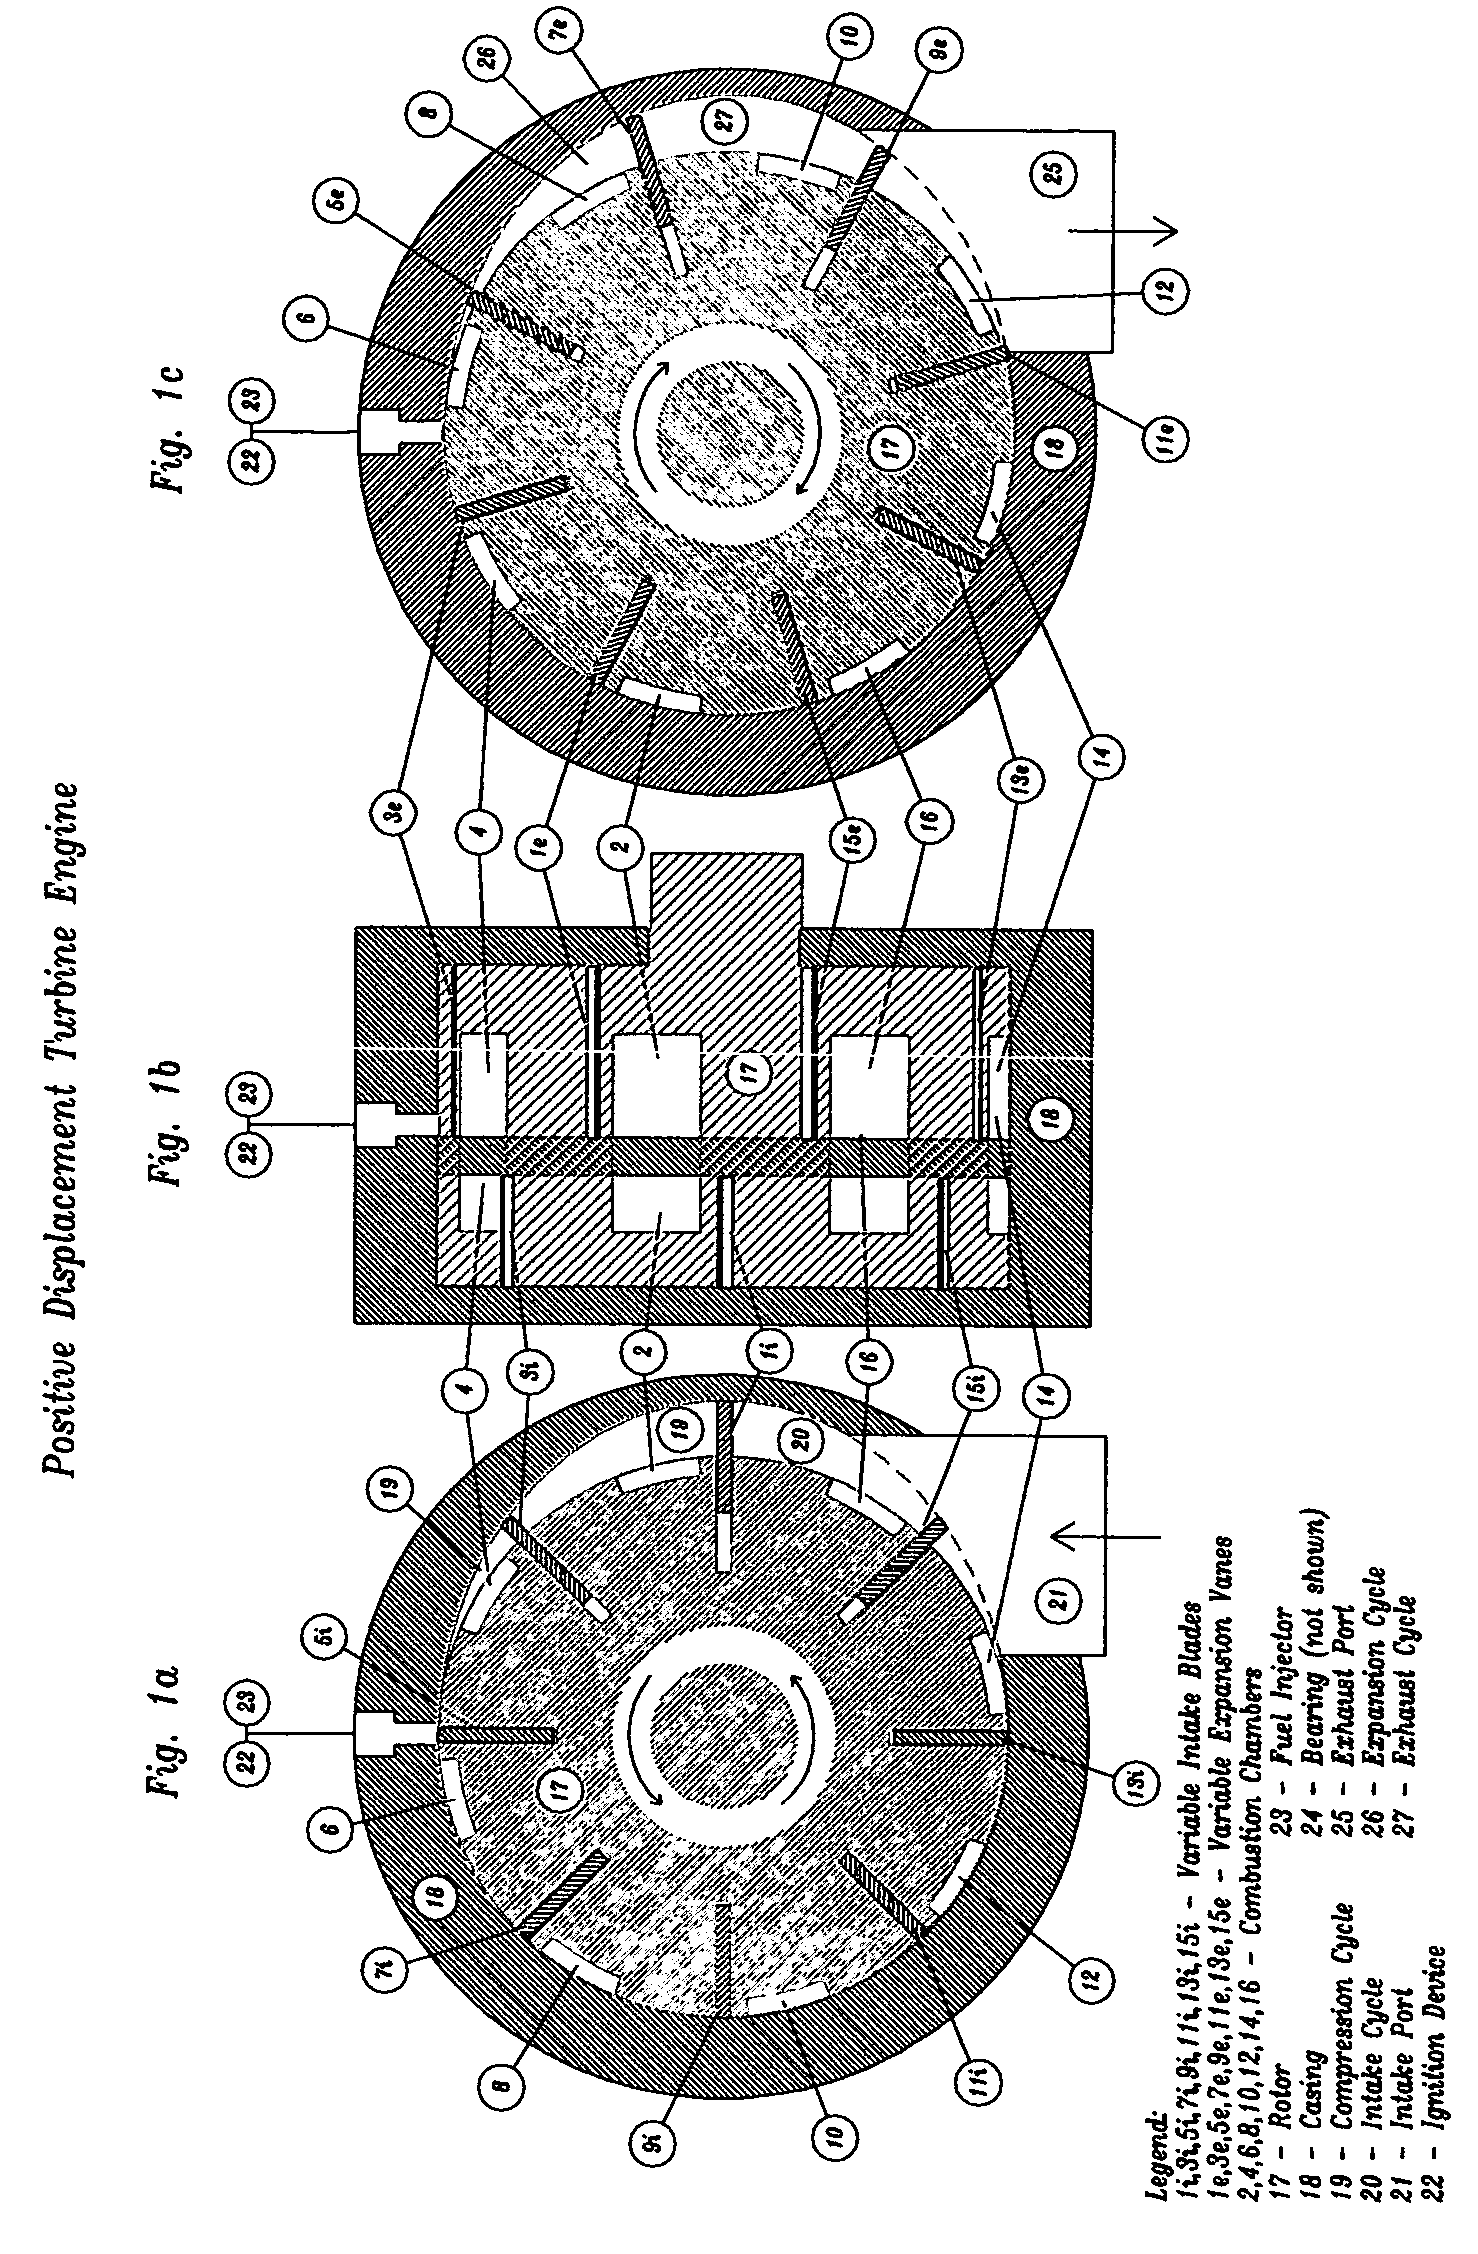 patent  positive displacement turbine engine google patents